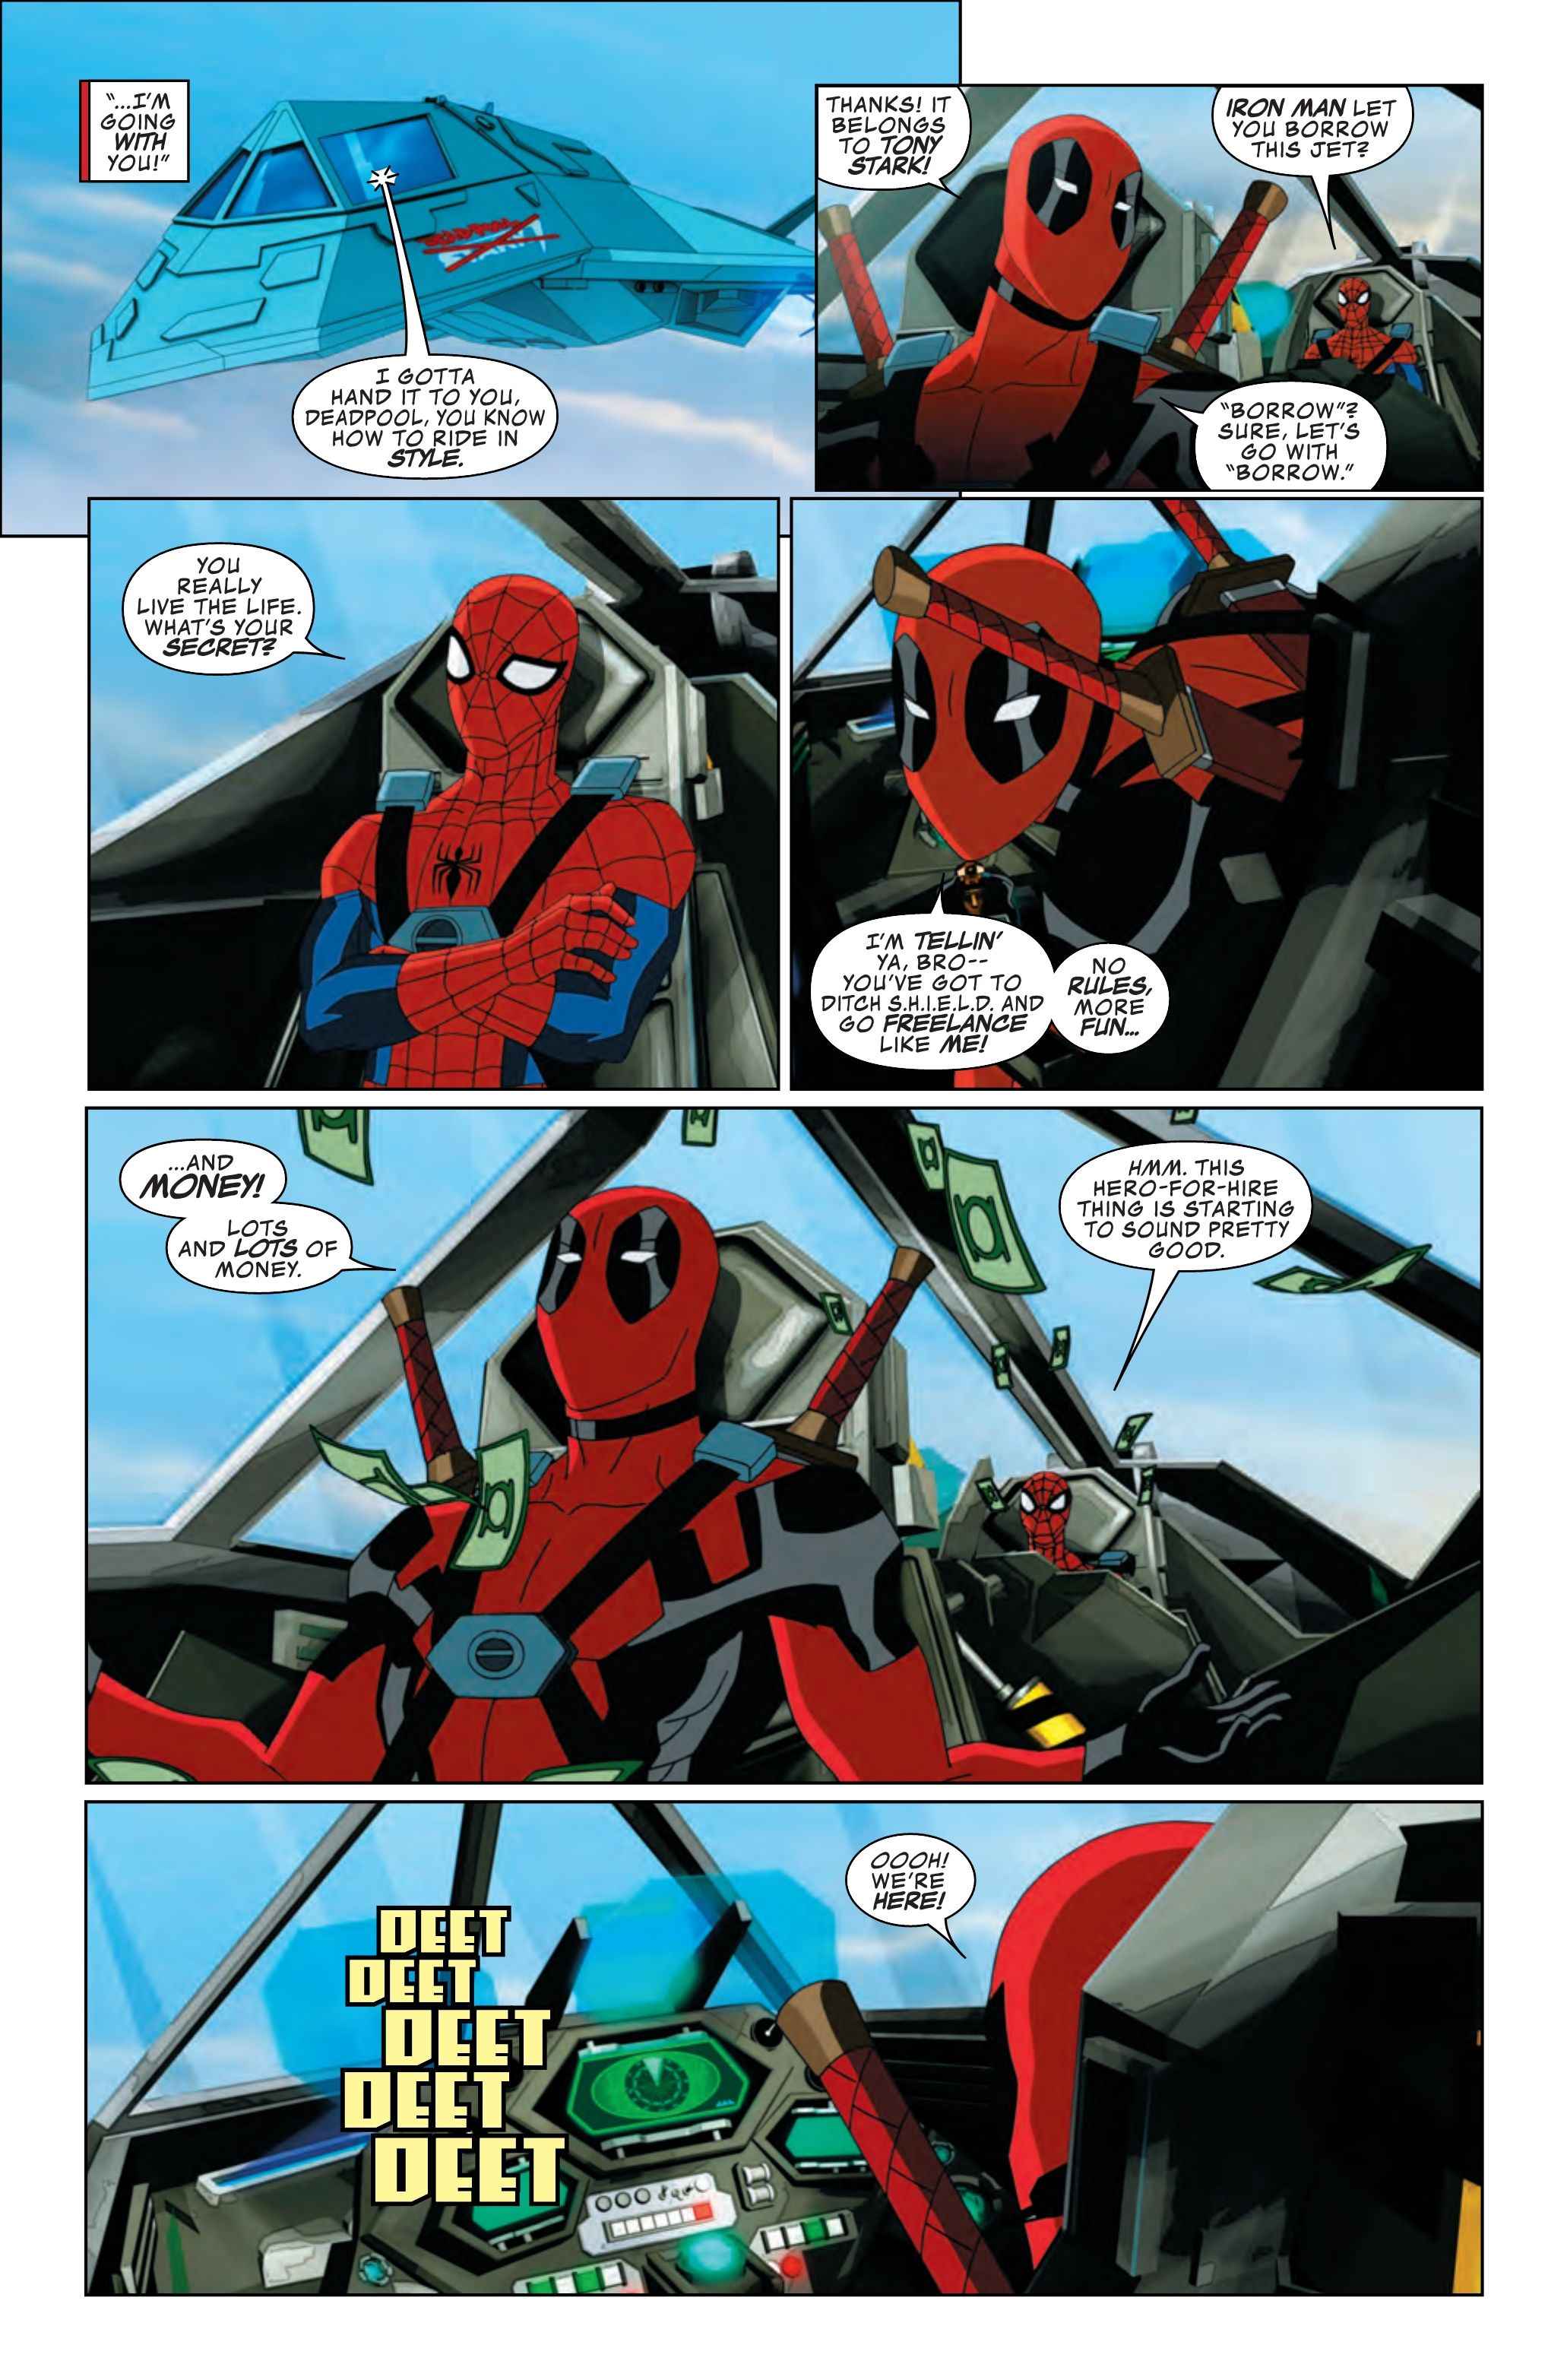 Preview: Marvel Universe Ultimate Spider-Man - Web Warriors #8,   Marvel Universe Ultimate Spider-Man - Web Warriors #8 Adapted by: Joe Caramagna Art: Disney Animation Publisher: Marvel Publication Date: June...,  #All-Comic #All-ComicPreviews #Comics #DisneyAnimation #JoeCaramagna #Marvel #MARVELUNIVERSEULTIMATESPIDER-MAN:WEBWARRIORS #Previews